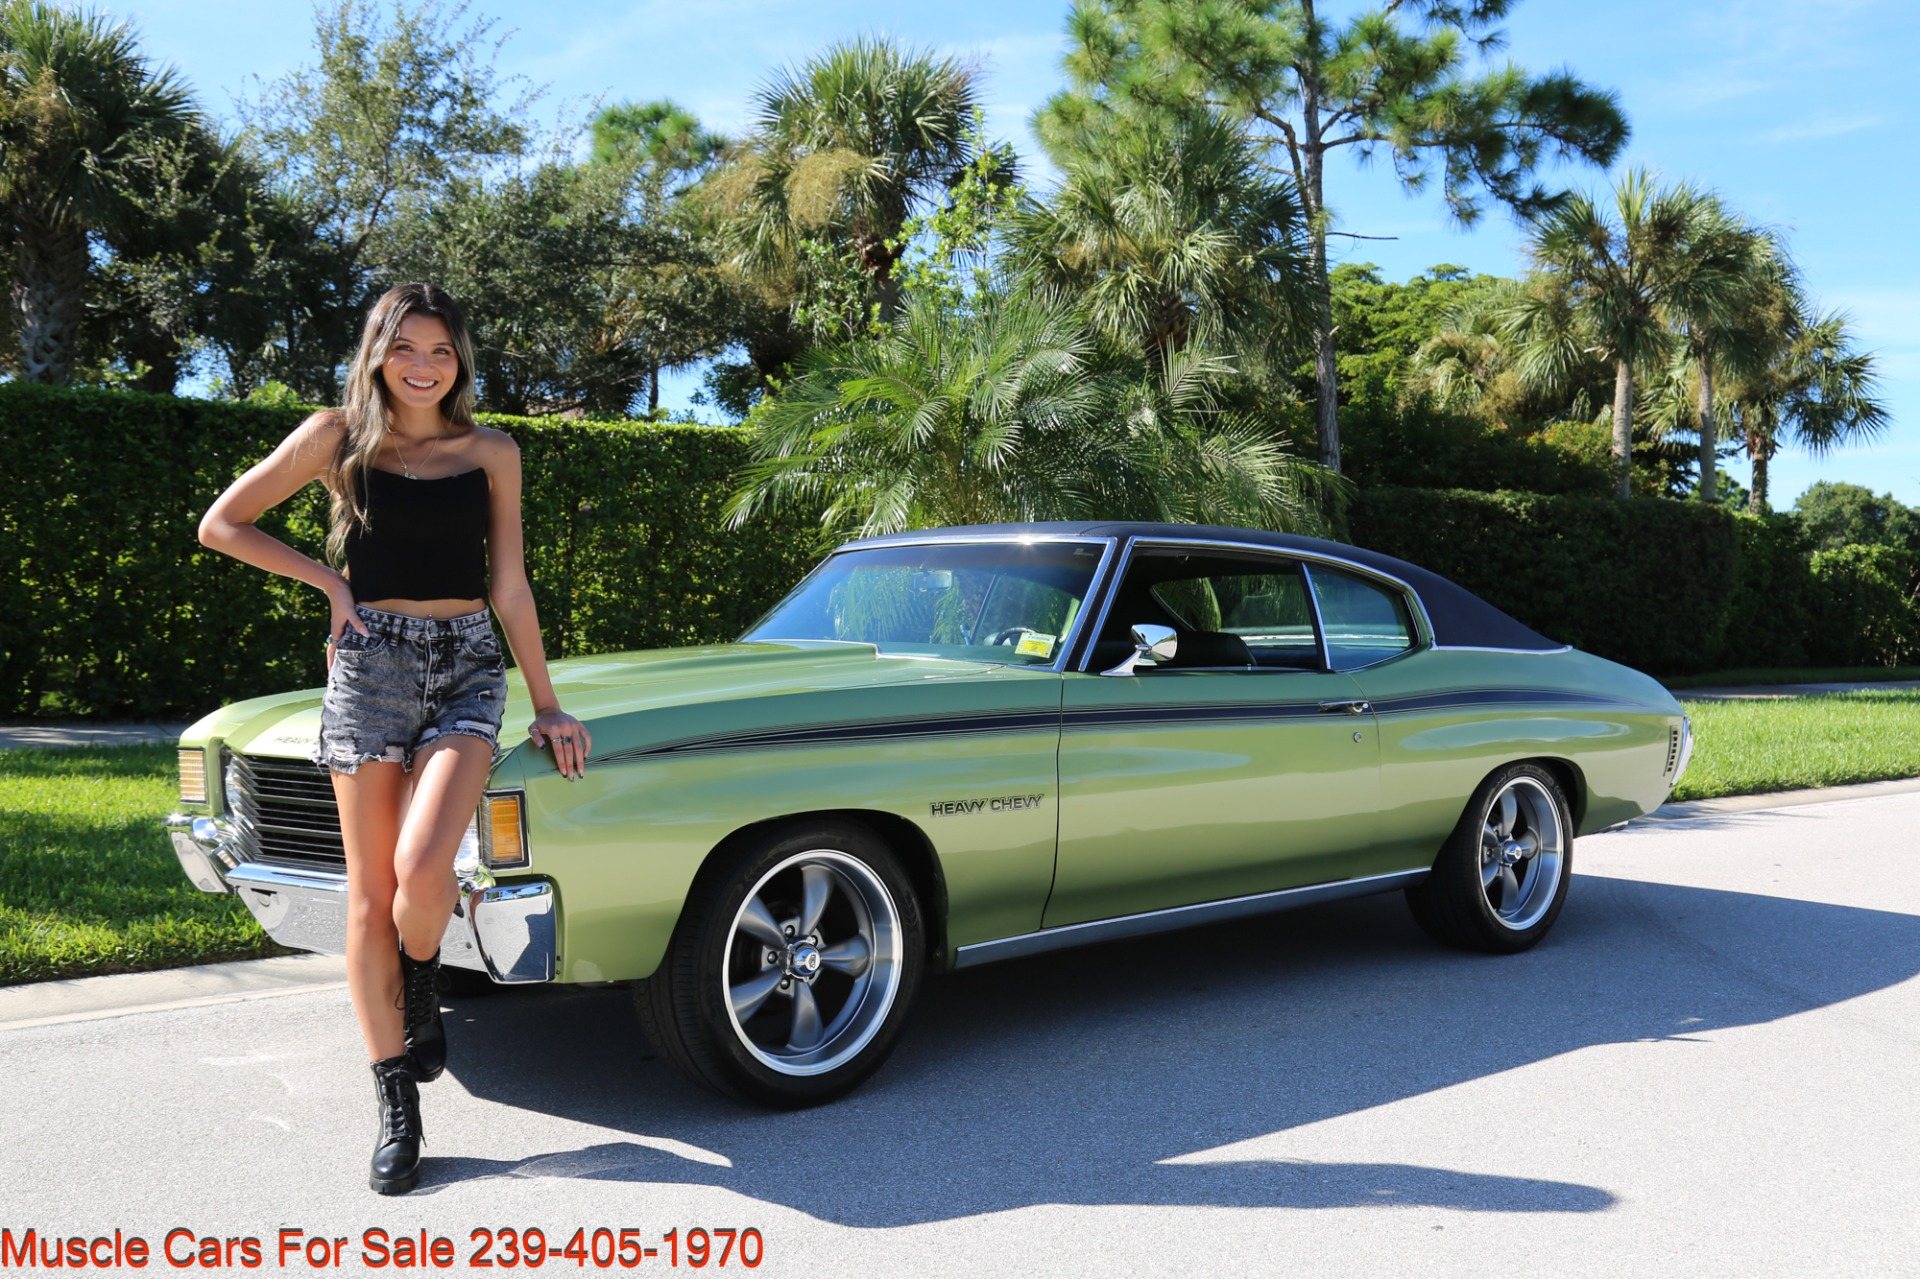 Used 1972 Chevrolet Chevelle Heavy Chevy Trim for sale $34,000 at Muscle Cars for Sale Inc. in Fort Myers FL 33912 2